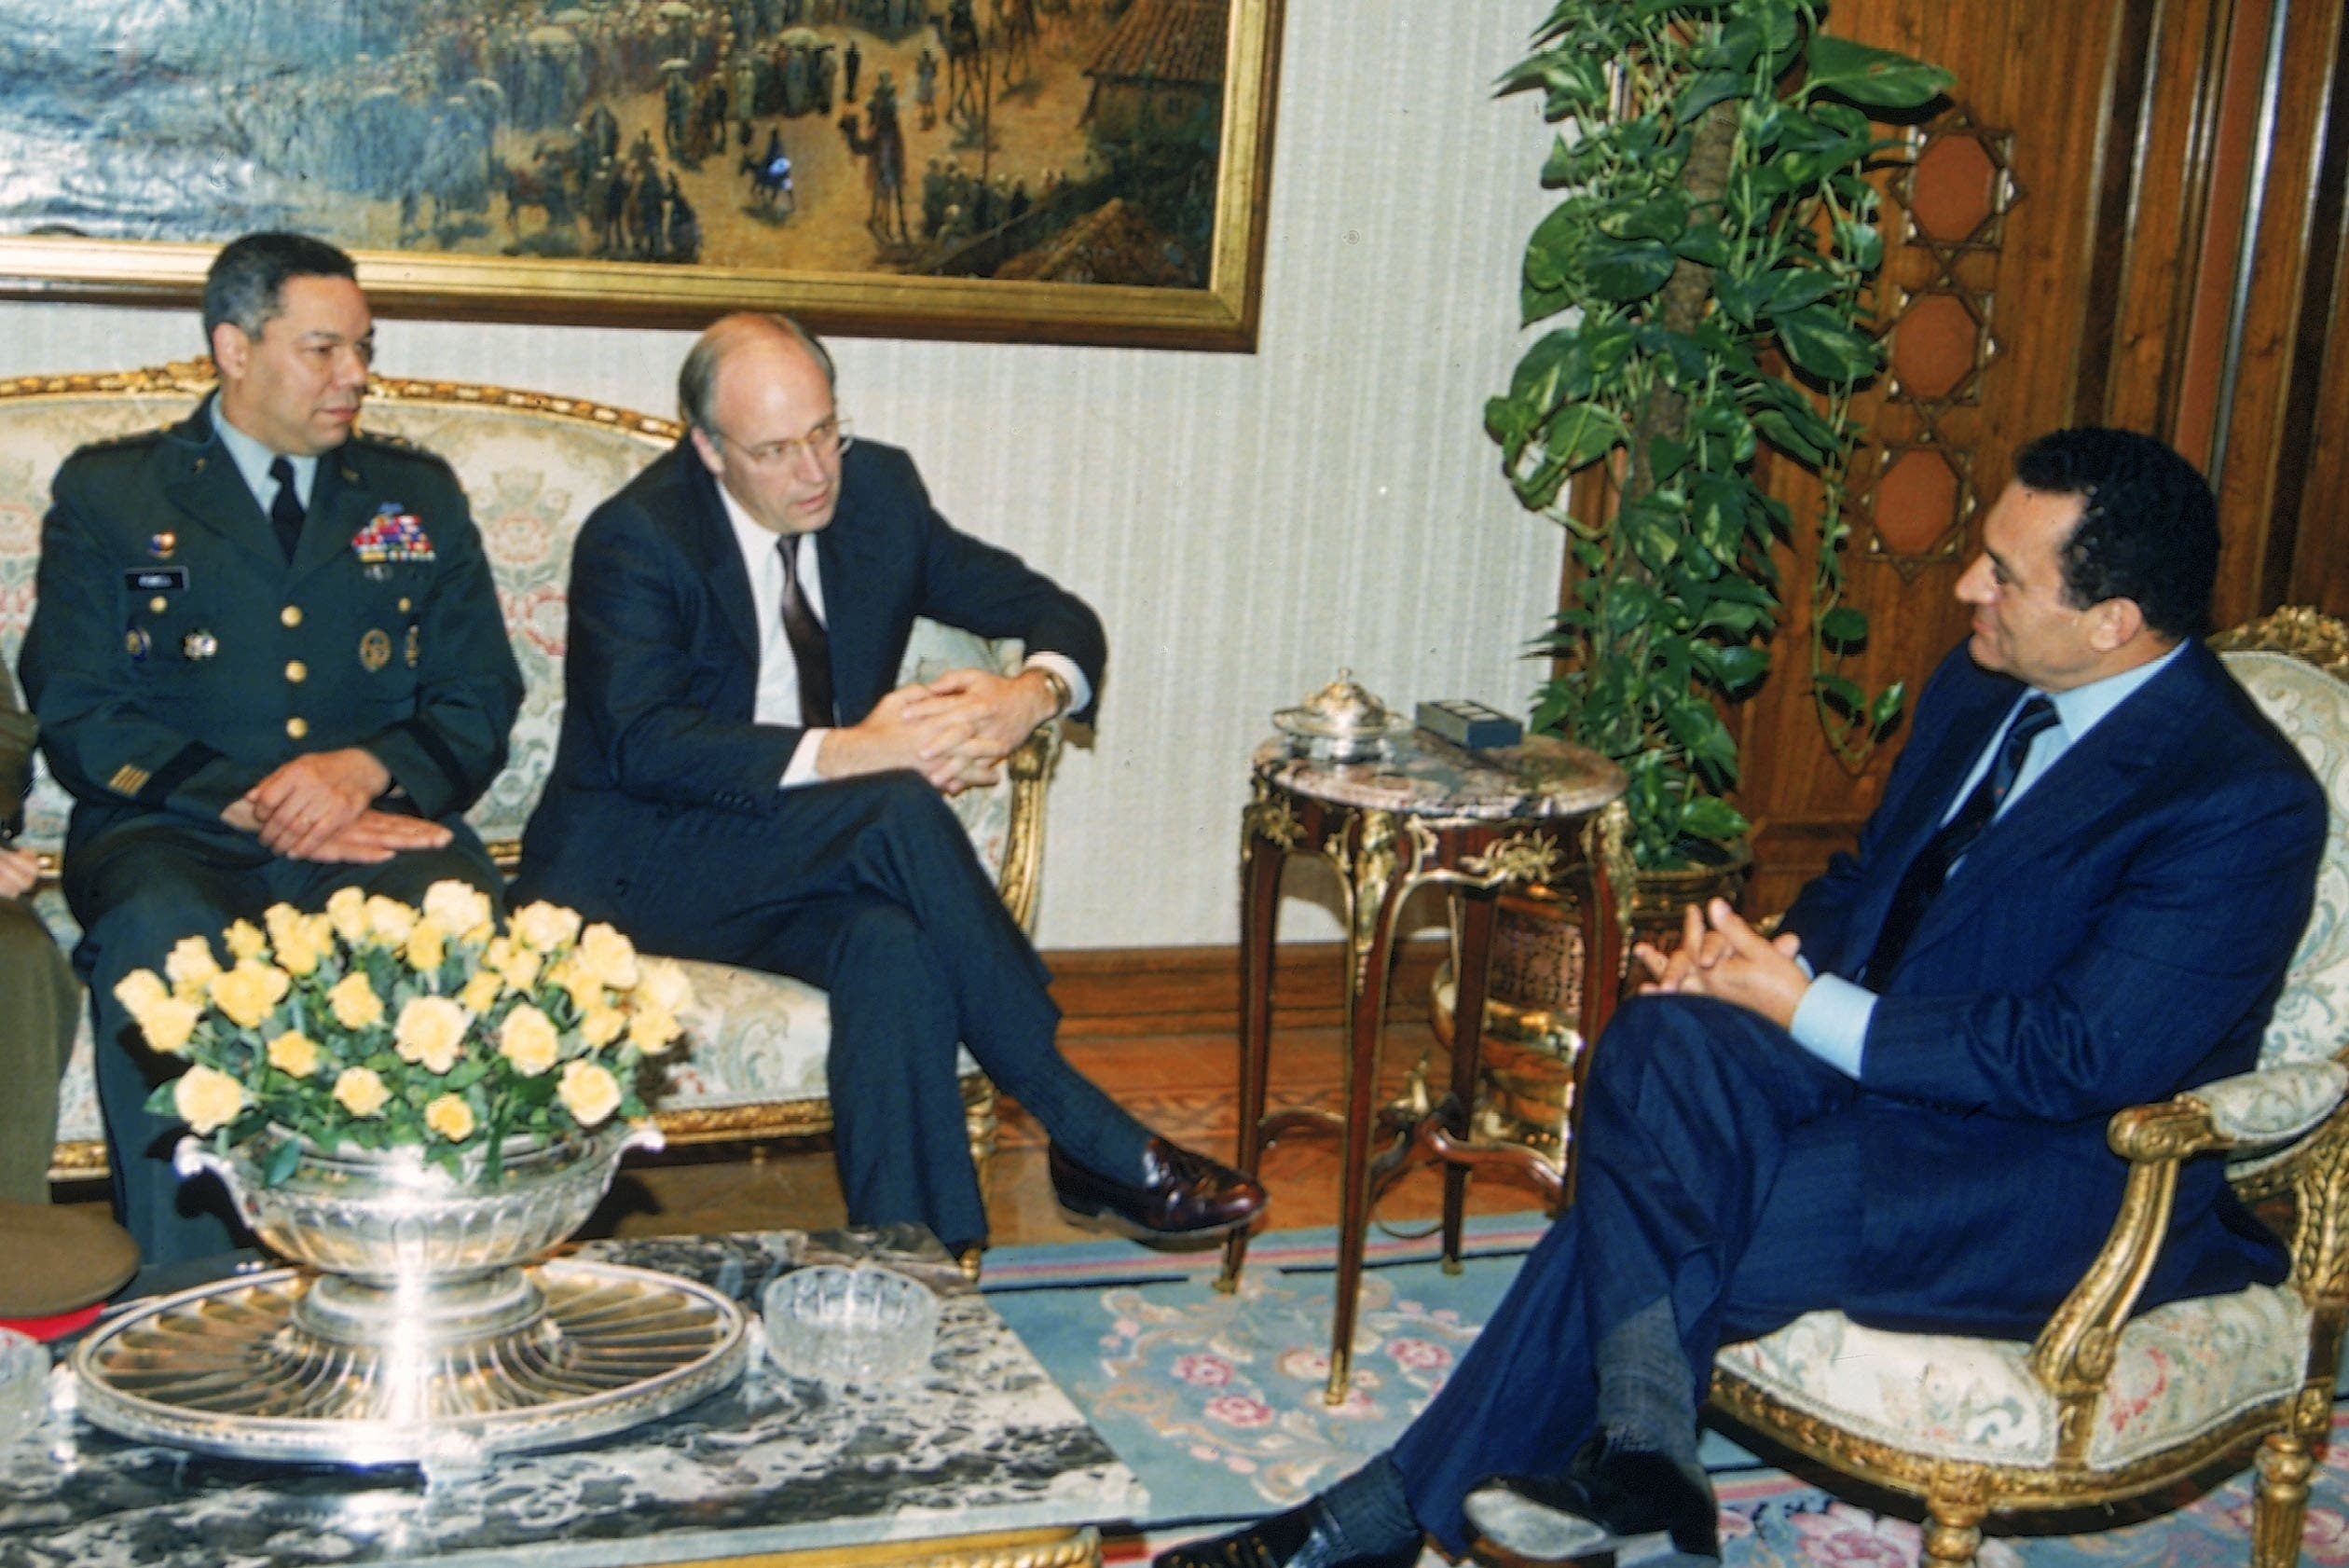 Chairman of the U.S. Joint Chiefs of Staff Gen. Colin Powell, left, and U.S. Secretary of Defense Dick Cheney, center, discuss the Gulf Crisis with Egyptian President Hosni Mubarak in Cairo, Egypt, Sunday morning, Dec. 23, 1990. (File photo: AP)